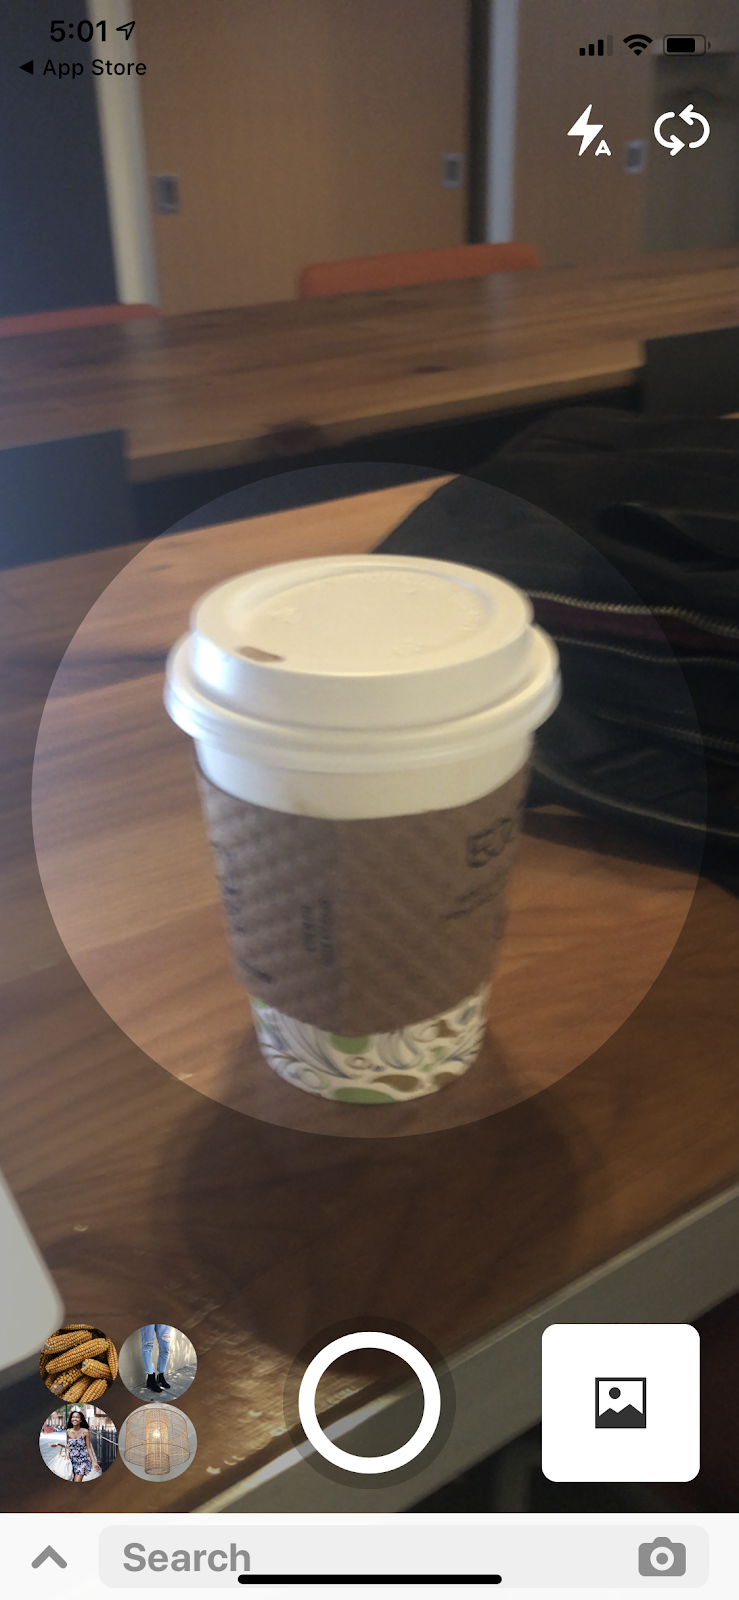 Taking a photo of a coffee cup with Pinterest's Lens Search option